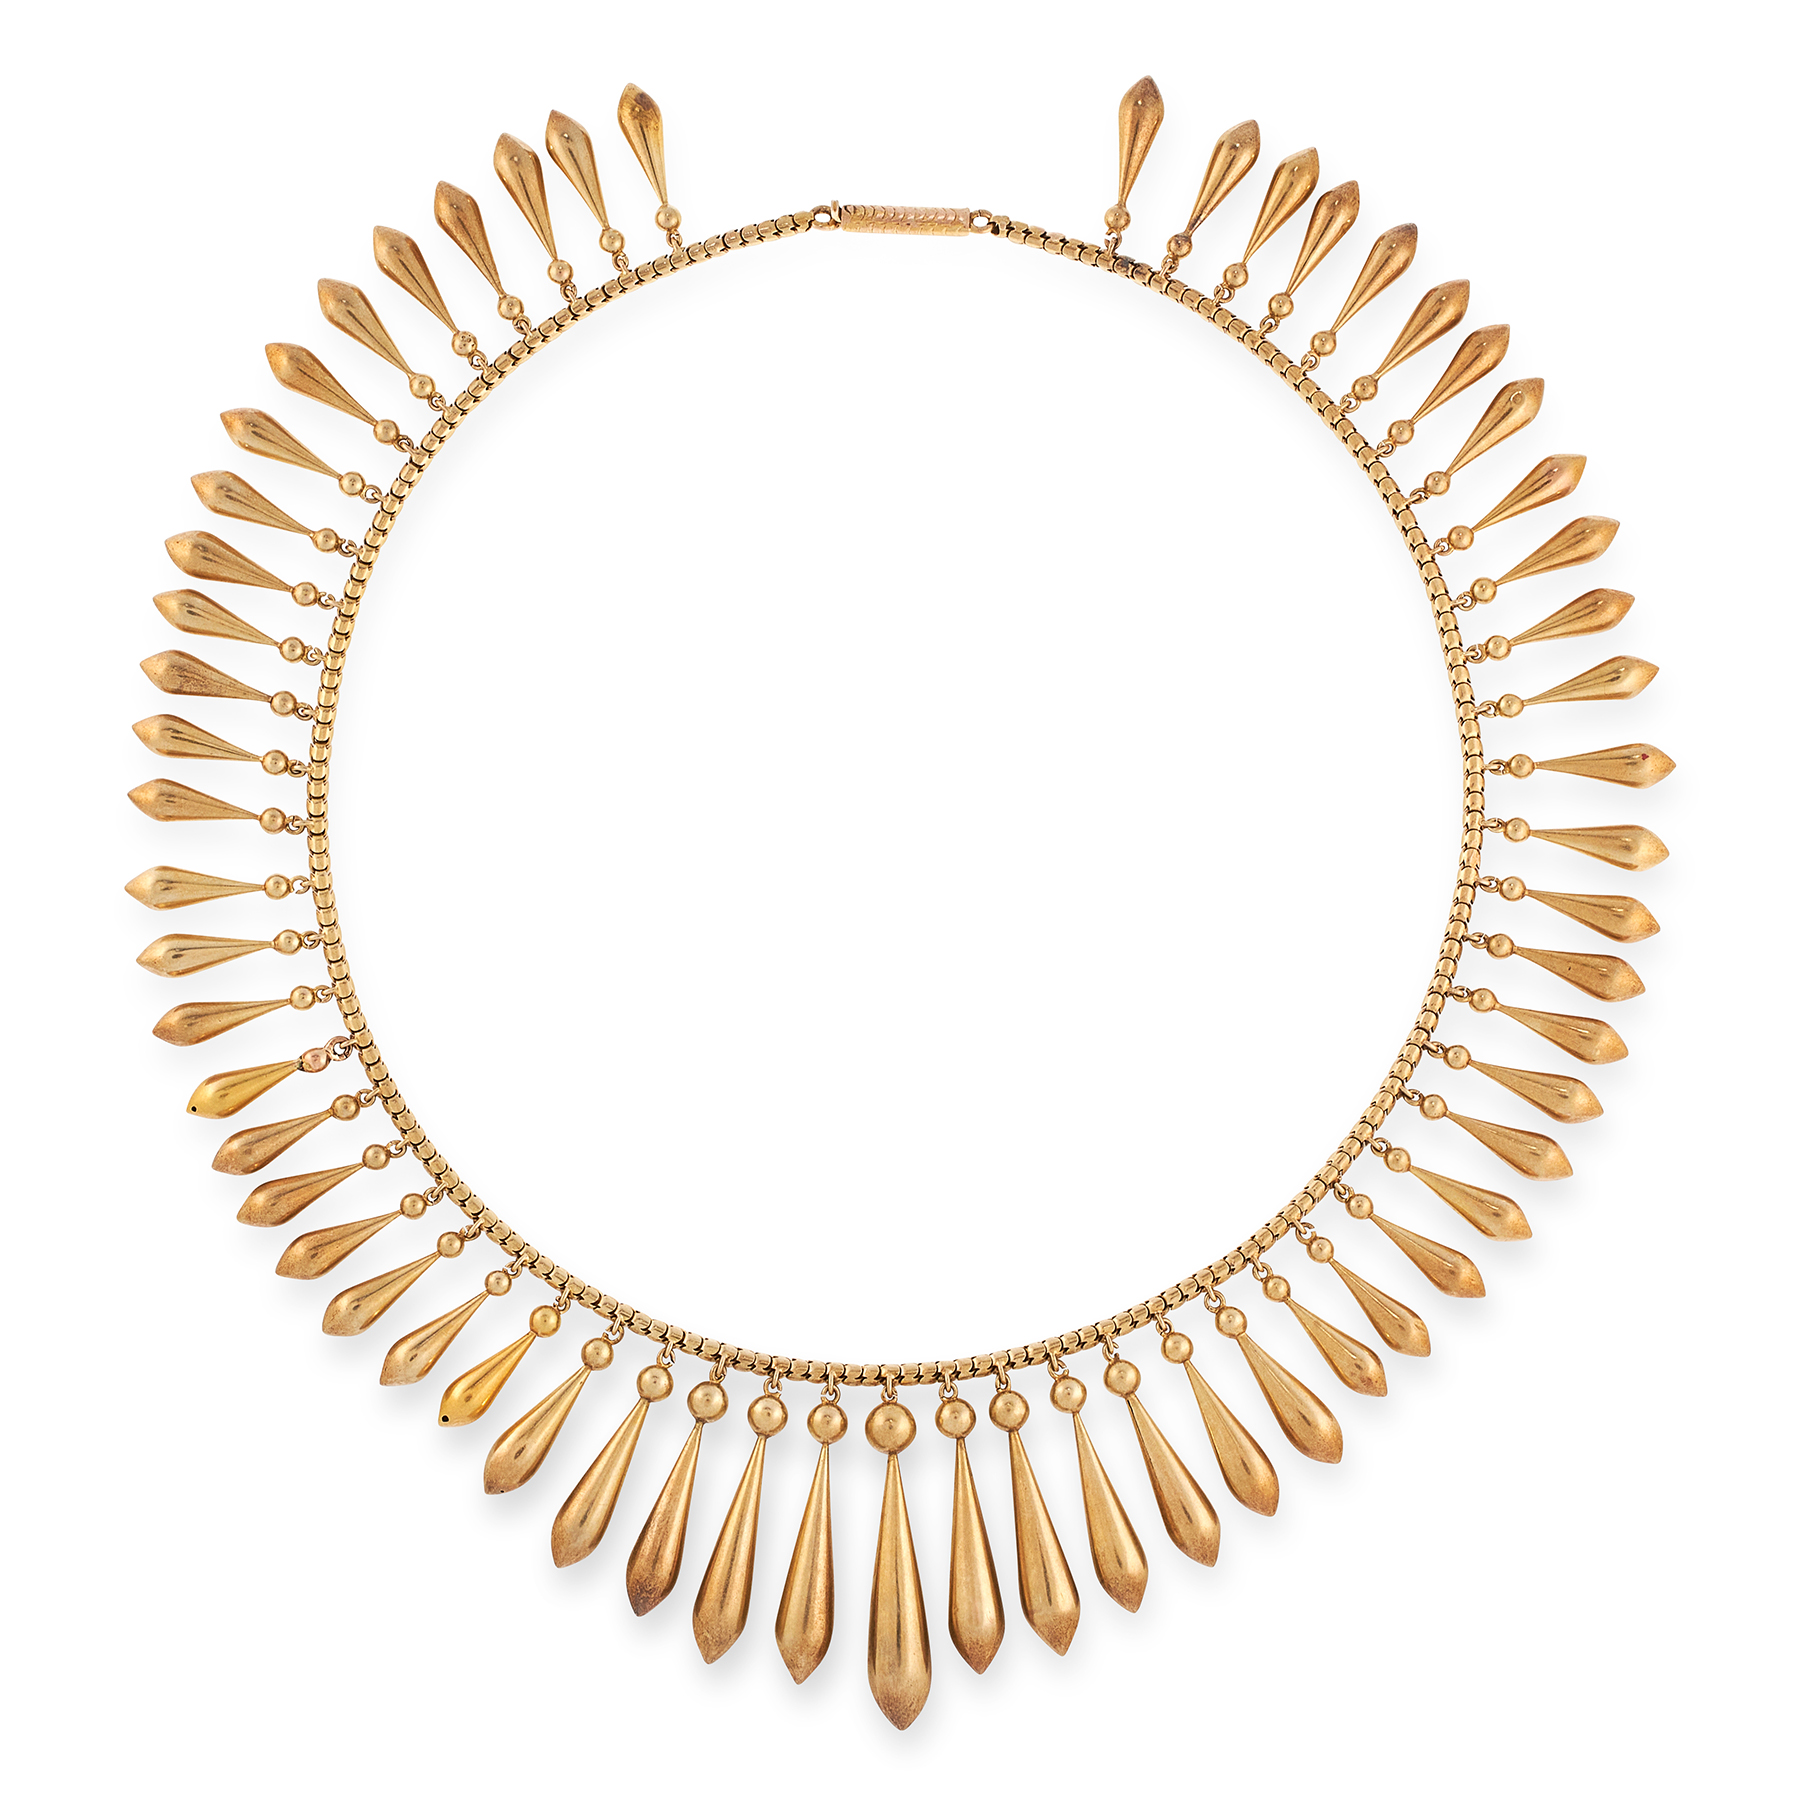 AN ANTIQUE FRINGE NECKLACE, 19TH CENTURY in yellow gold, the snake link chain suspending a series of - Image 2 of 2